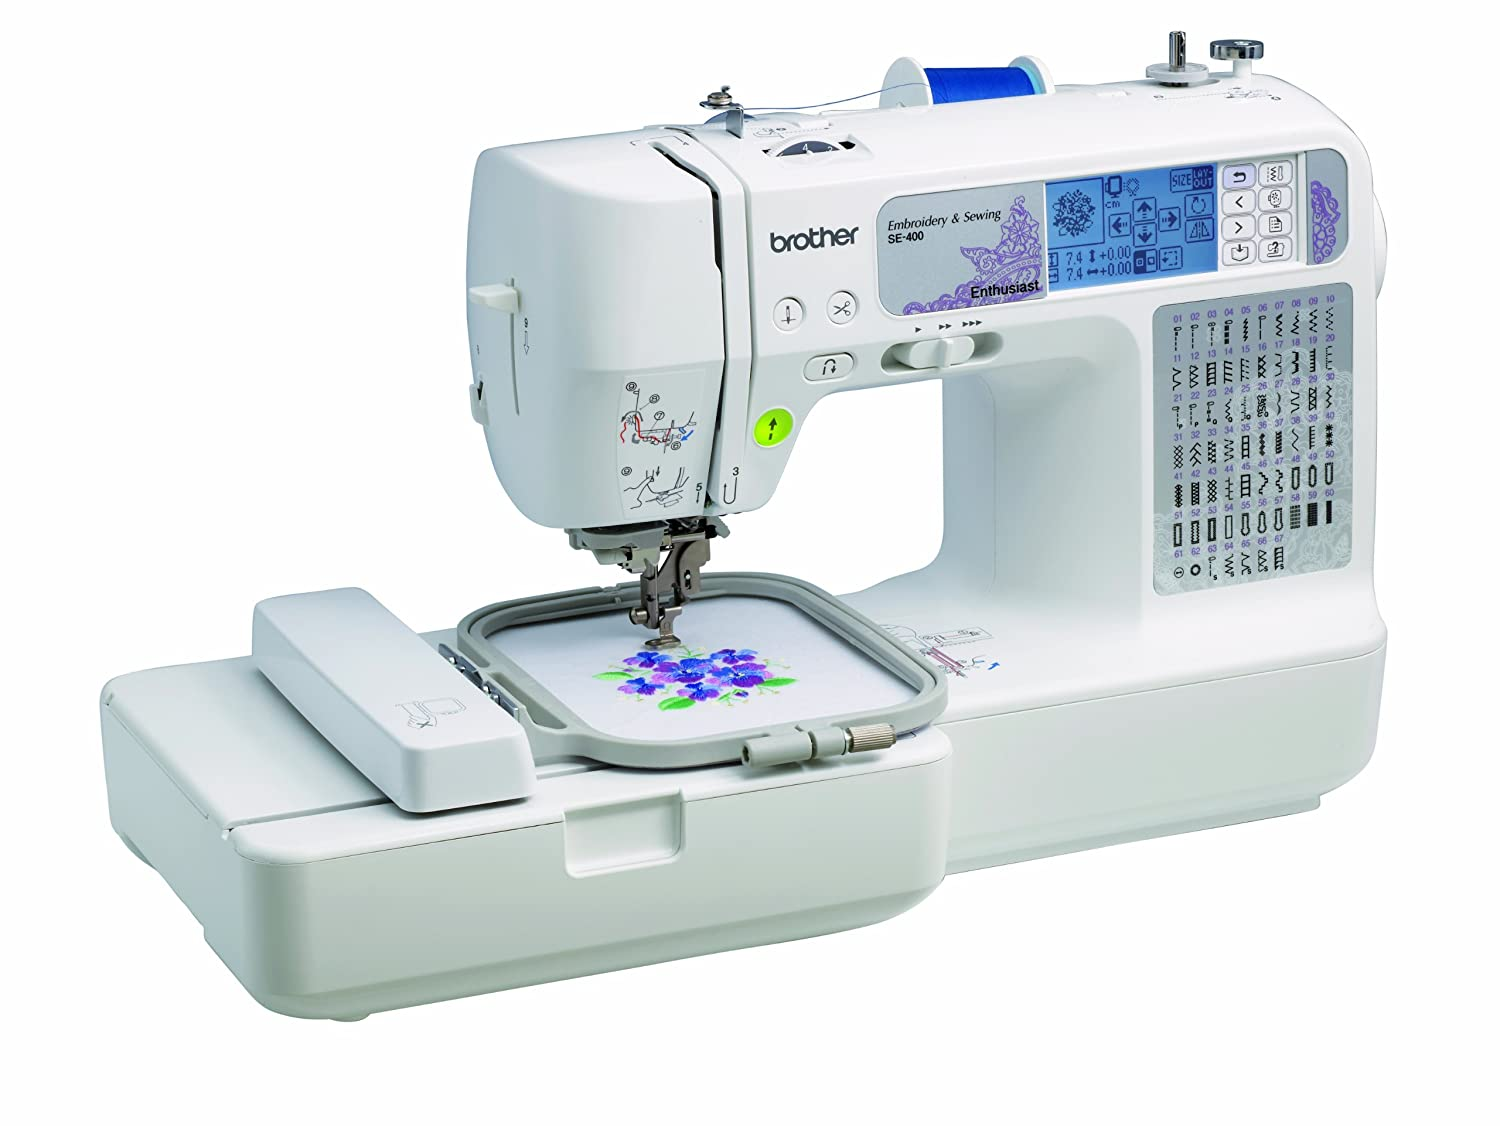 Brother SE400 - Computerized Sewing and Embroidery Machine Review